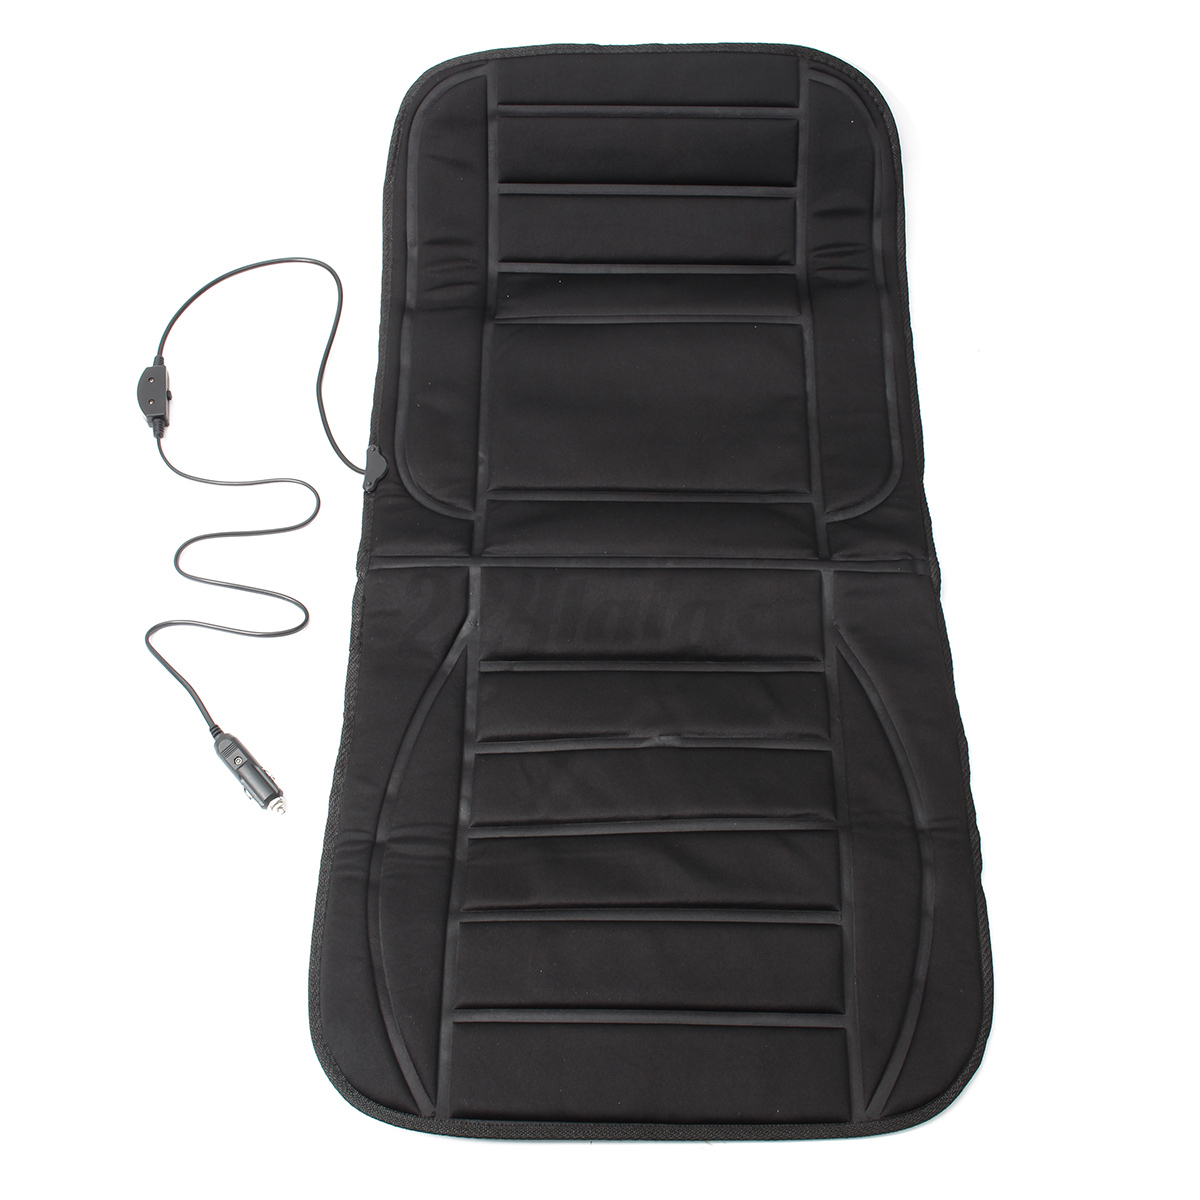 massage pads for chair bar stool kuala lumpur seat cushion car back heat massager lumbar